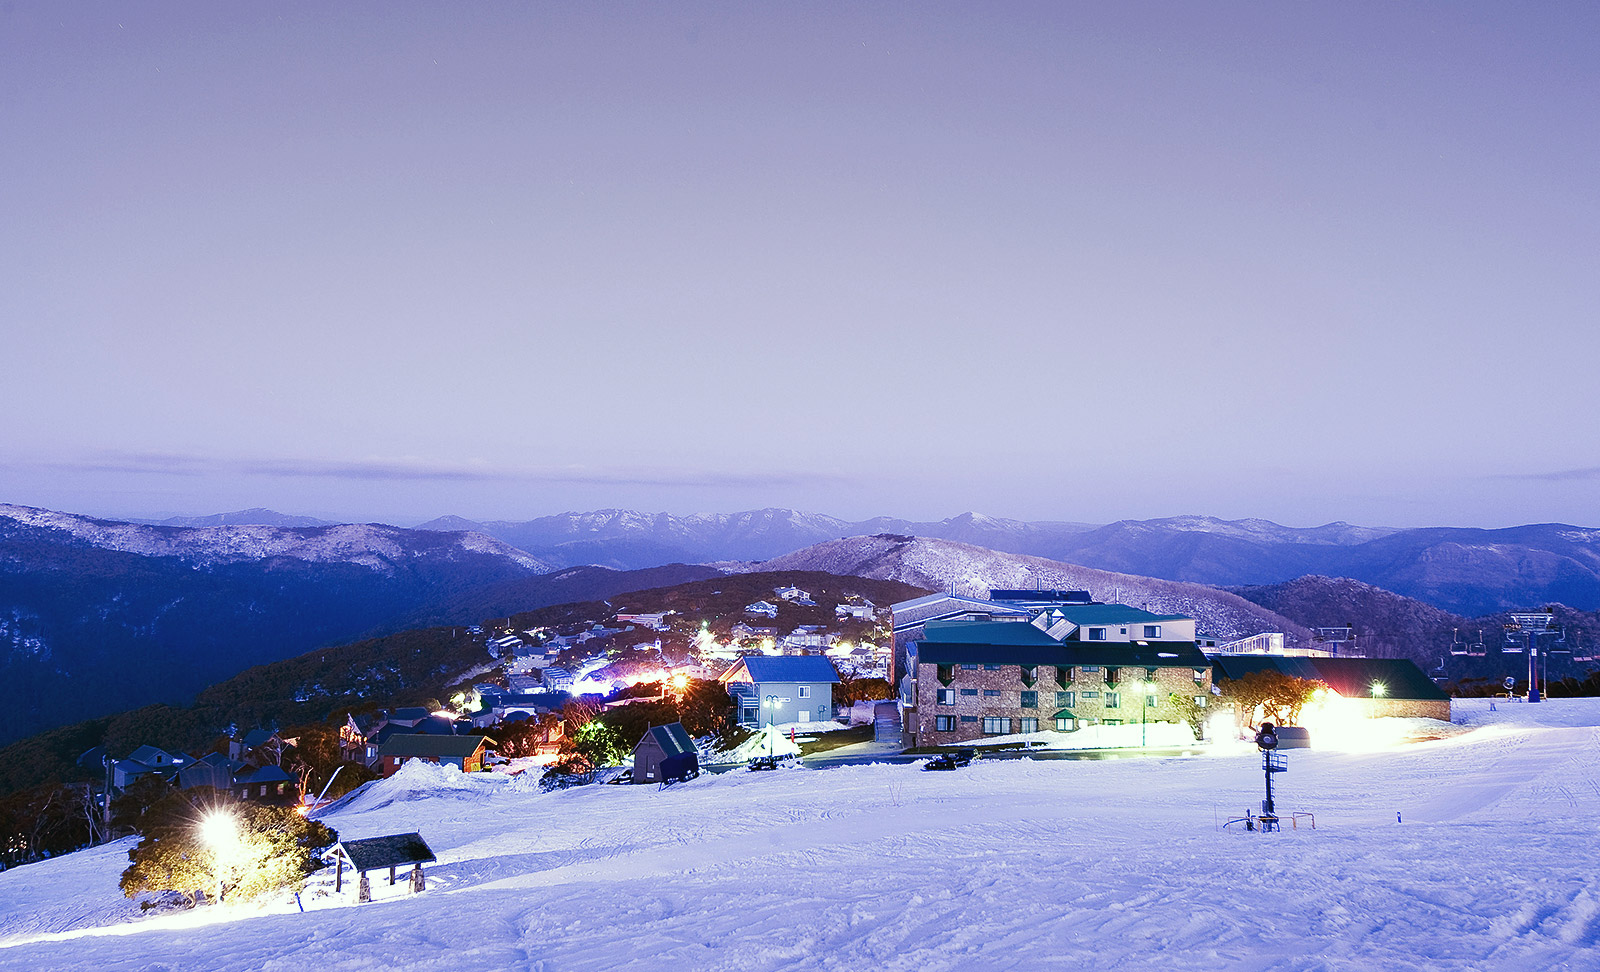 Arlberg Hotel Mt Buller - Coogee Beach Accommodation